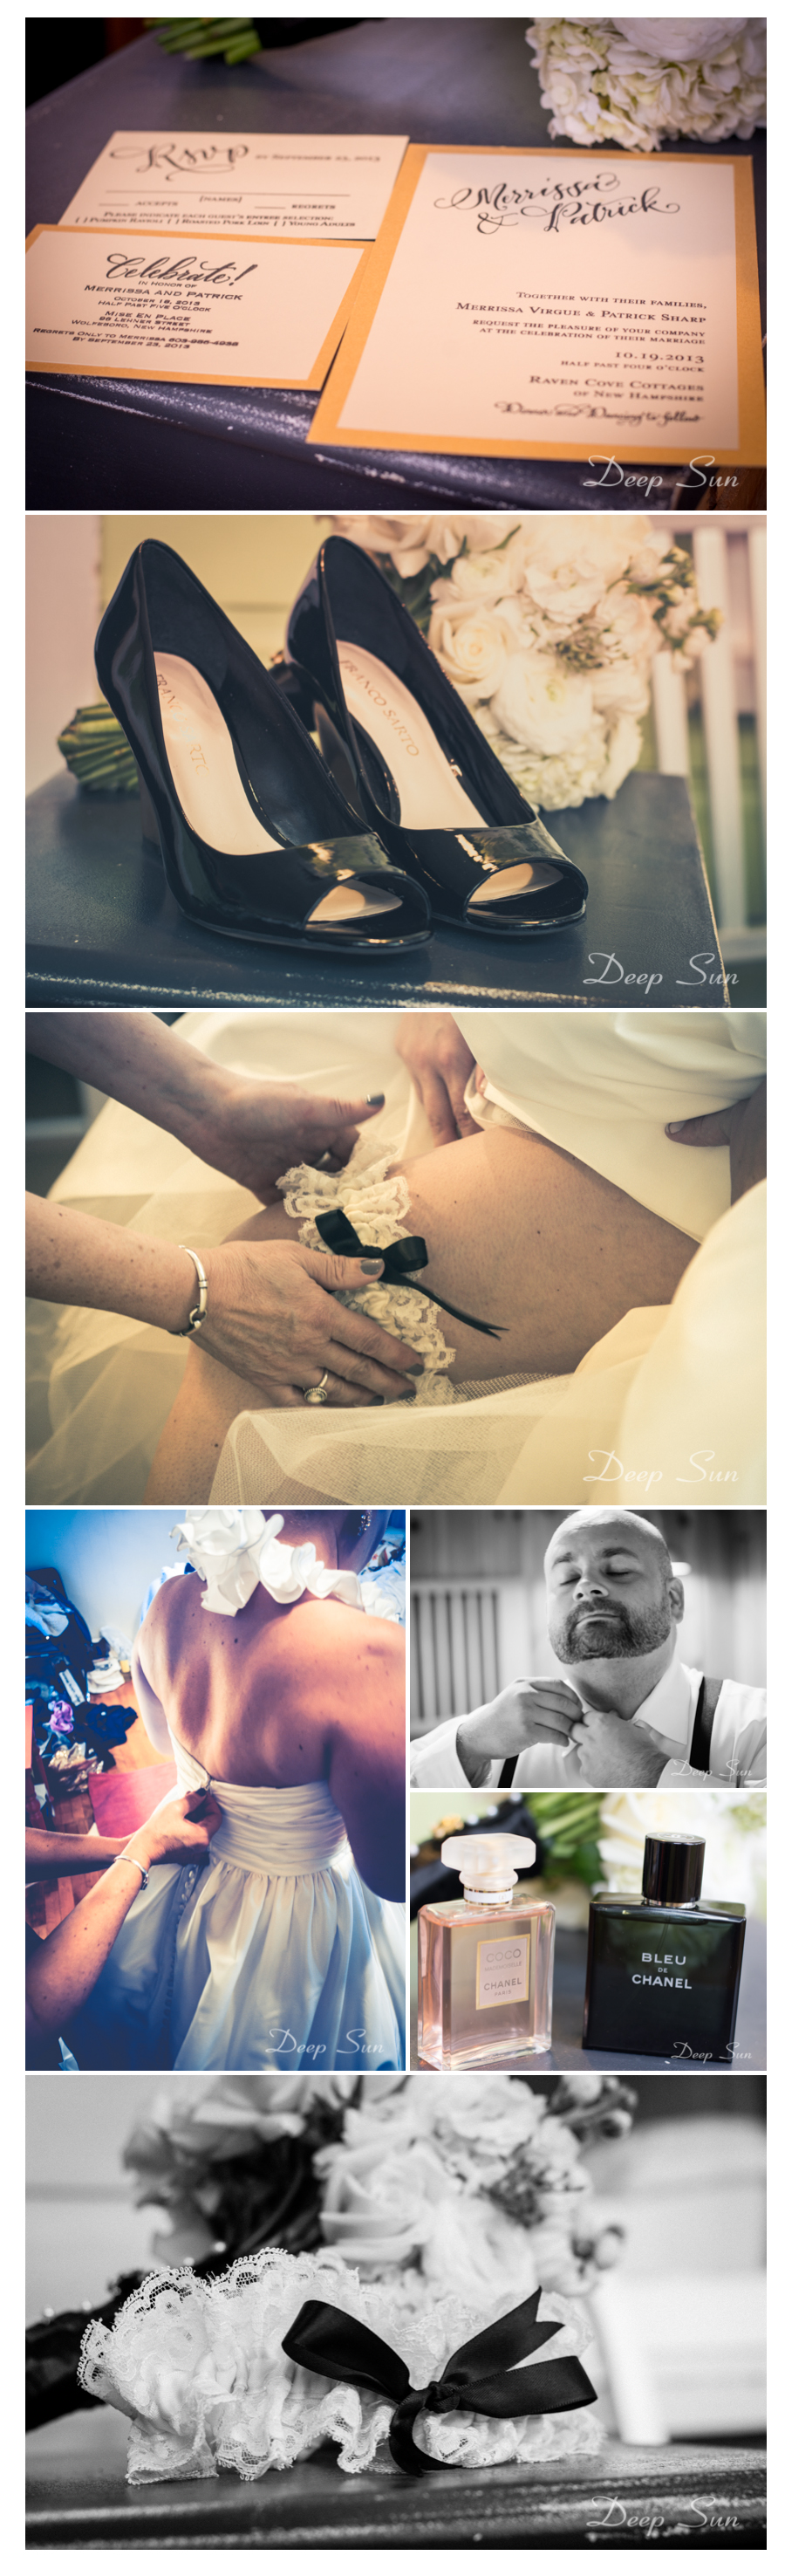 dee-sun-photography-new-hampshire-wedding-1